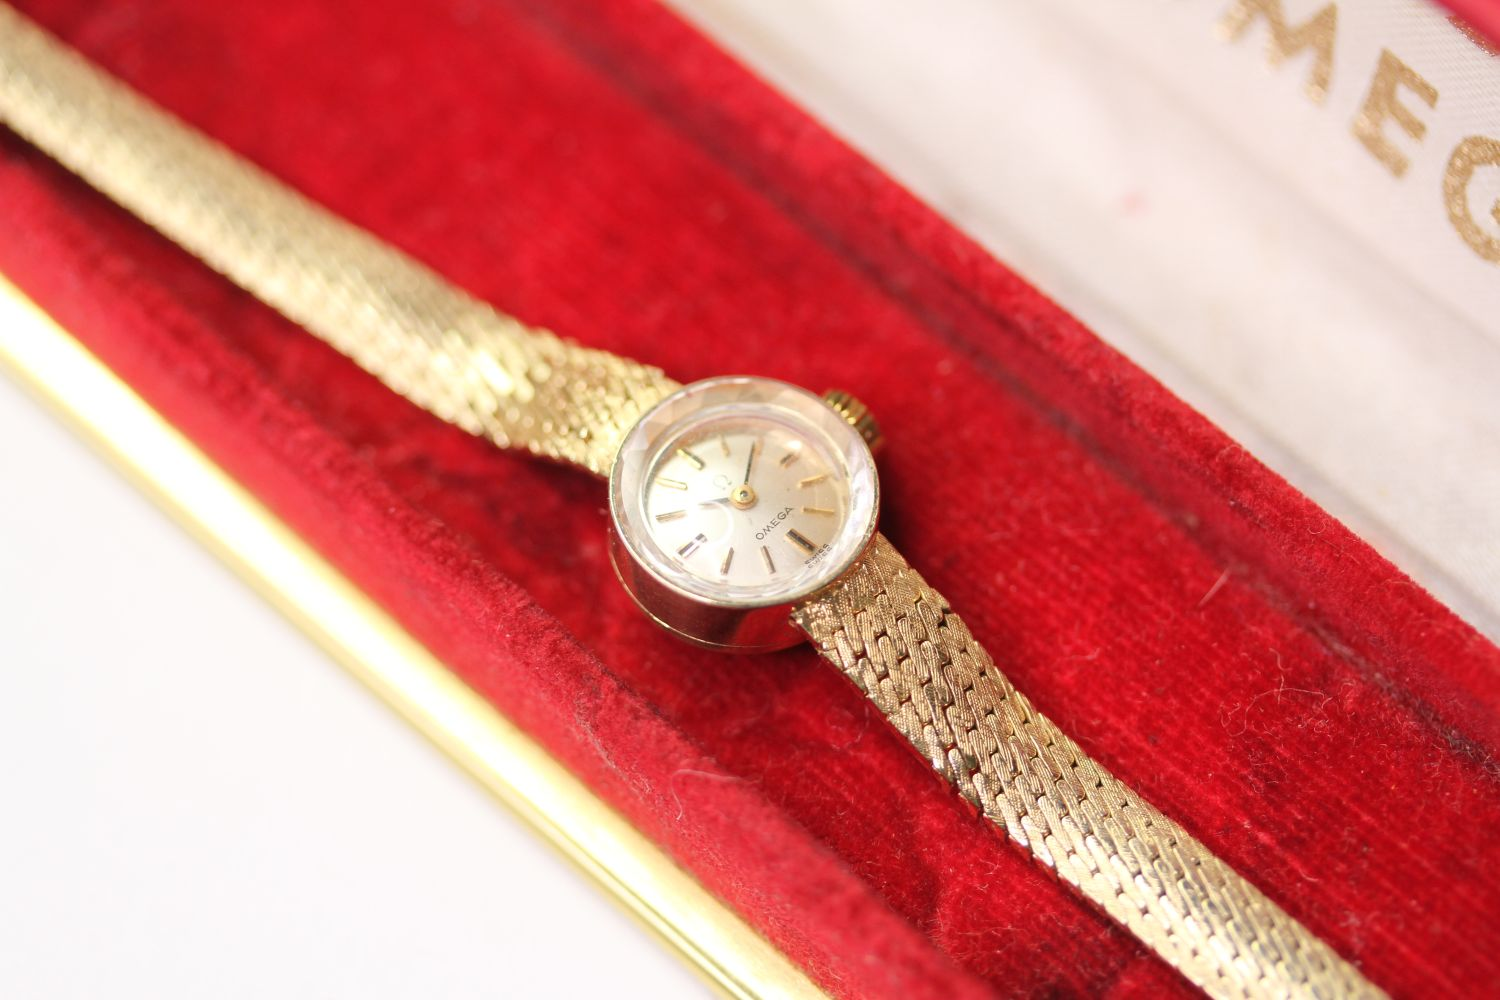 VINTAGE OMEGA WRISTWATCH, circular silver dial with baton hour markers, 14mm 14ct gold case, snap - Image 2 of 3